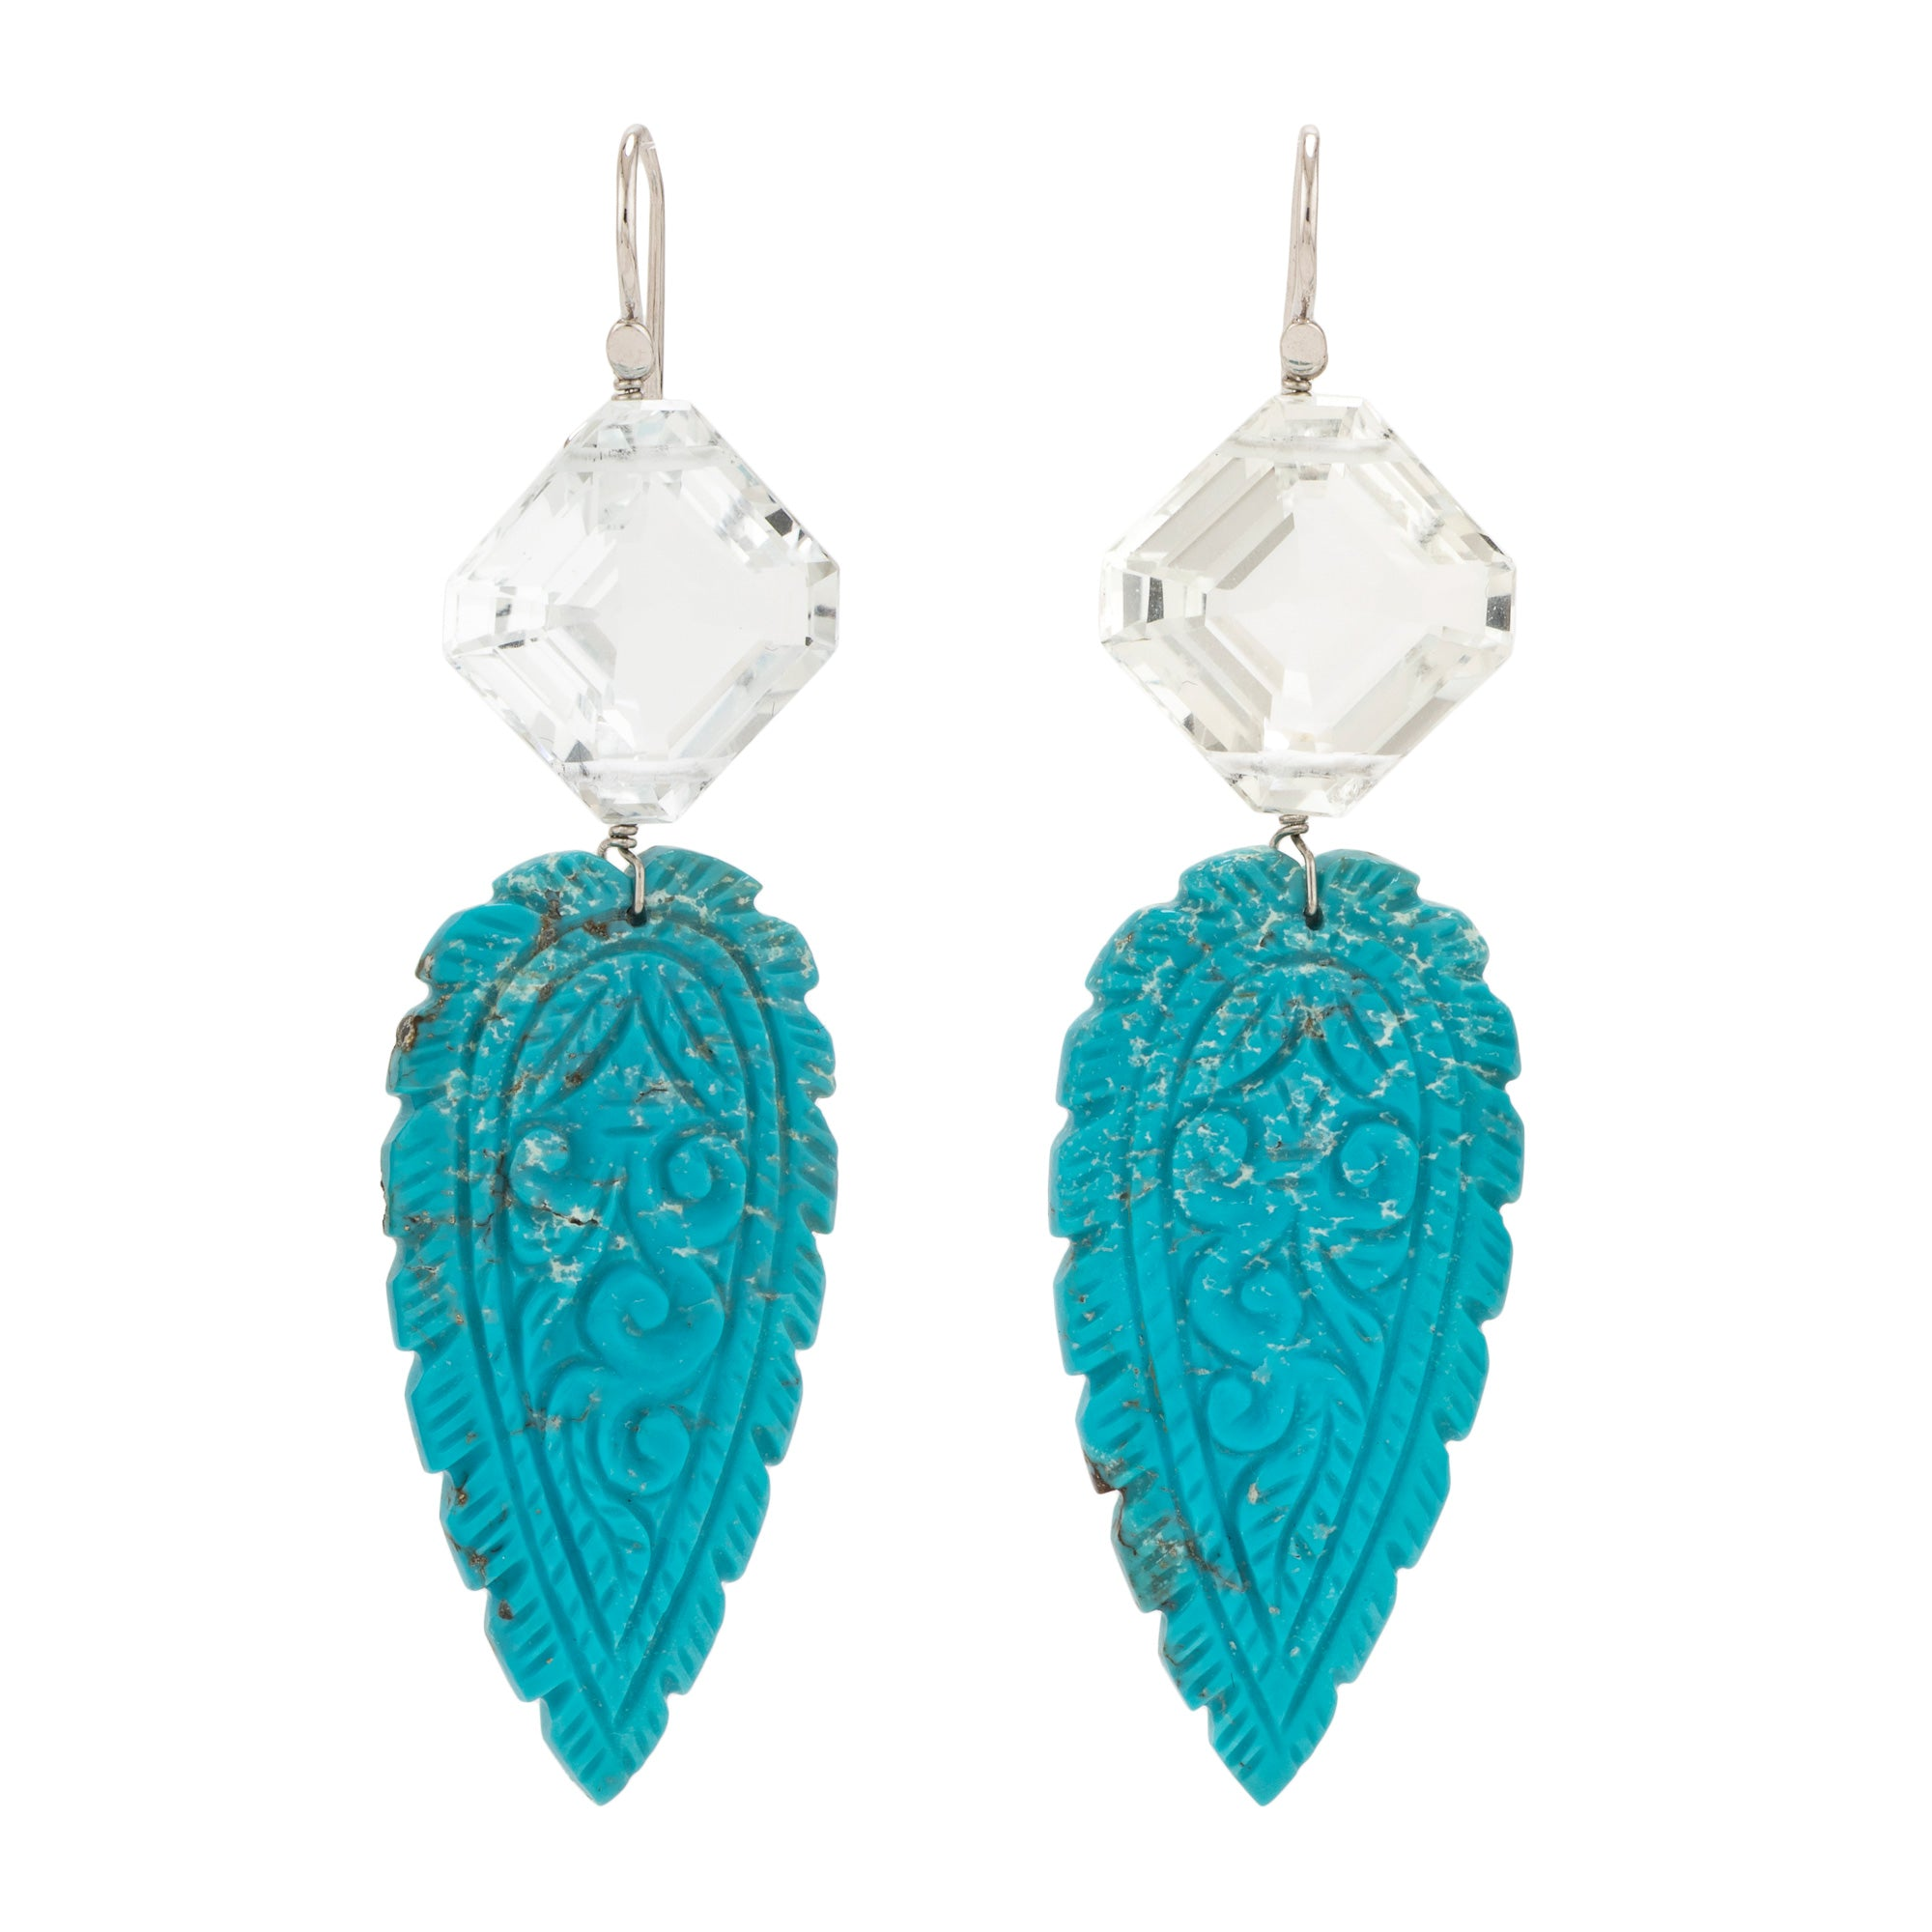 Carved ii turquoise earrings